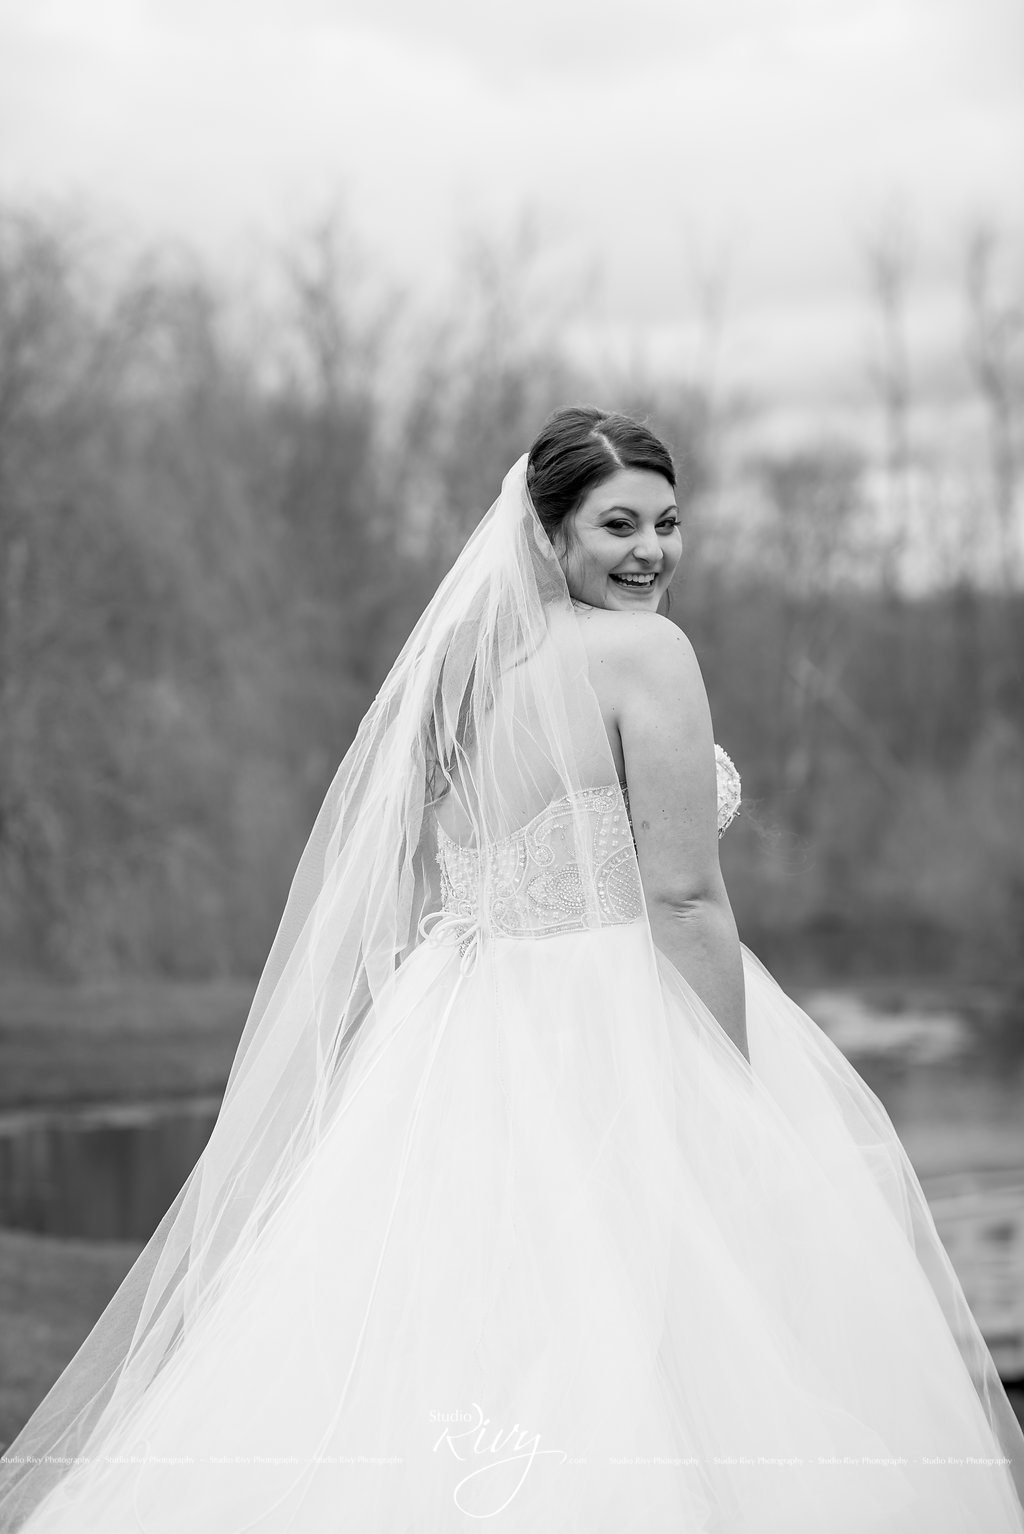 Alexandra did an amazing job! She made myself and all 5 of my bridesmaids feel so beautiful. She came right to my house and did both our hair and makeup. She was such a pleasure to work with. Thank you so much again Alexandra!!!!! - Justine P. -Bride